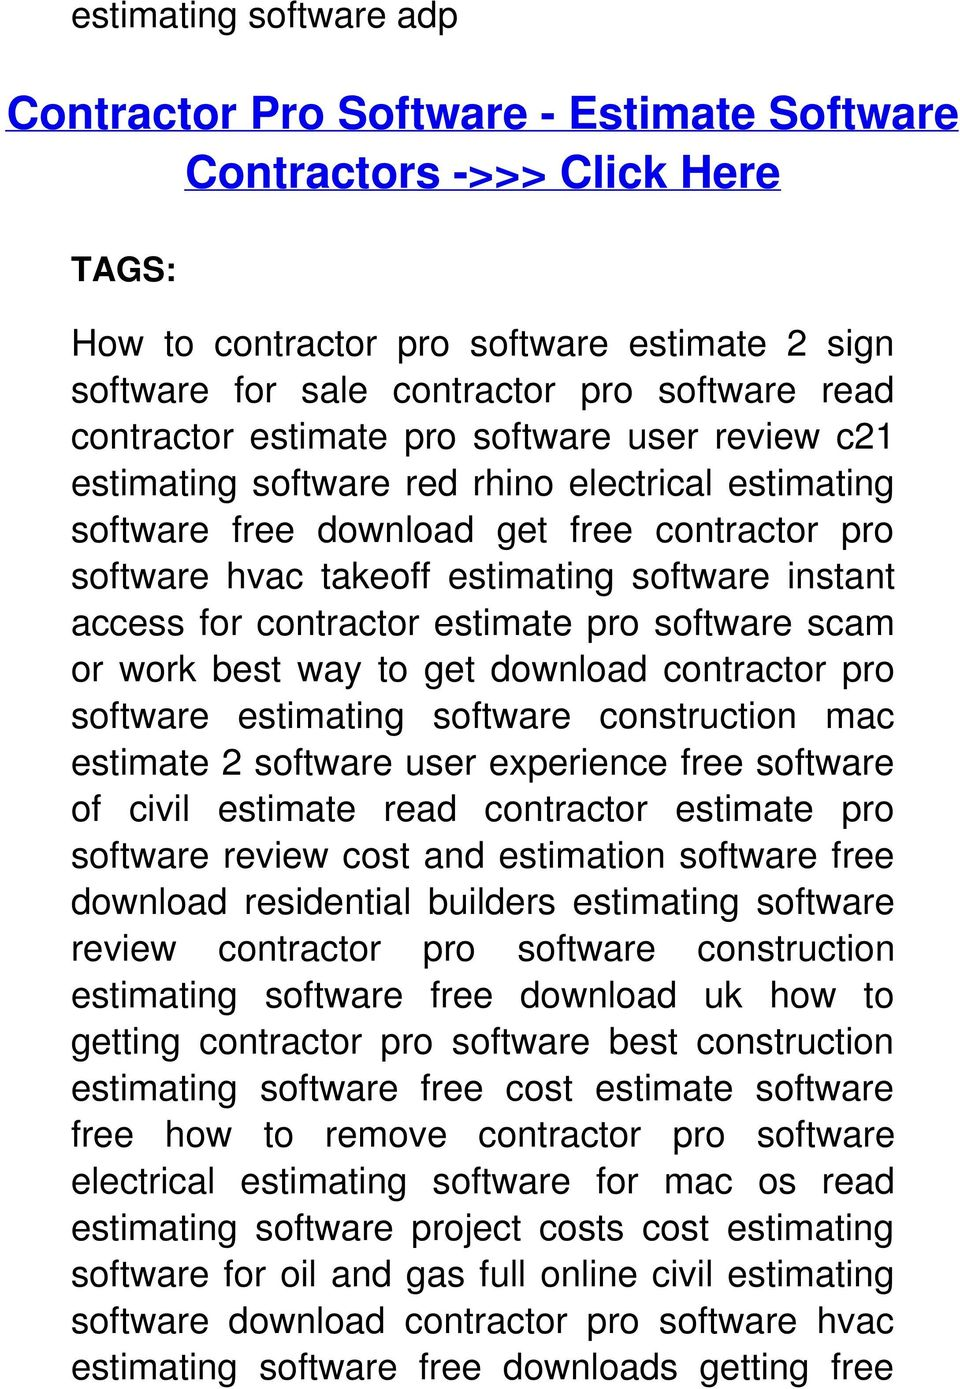 access for contractor estimate pro software scam or work best way to get download contractor pro software estimating software construction mac estimate 2 software user experience free software of